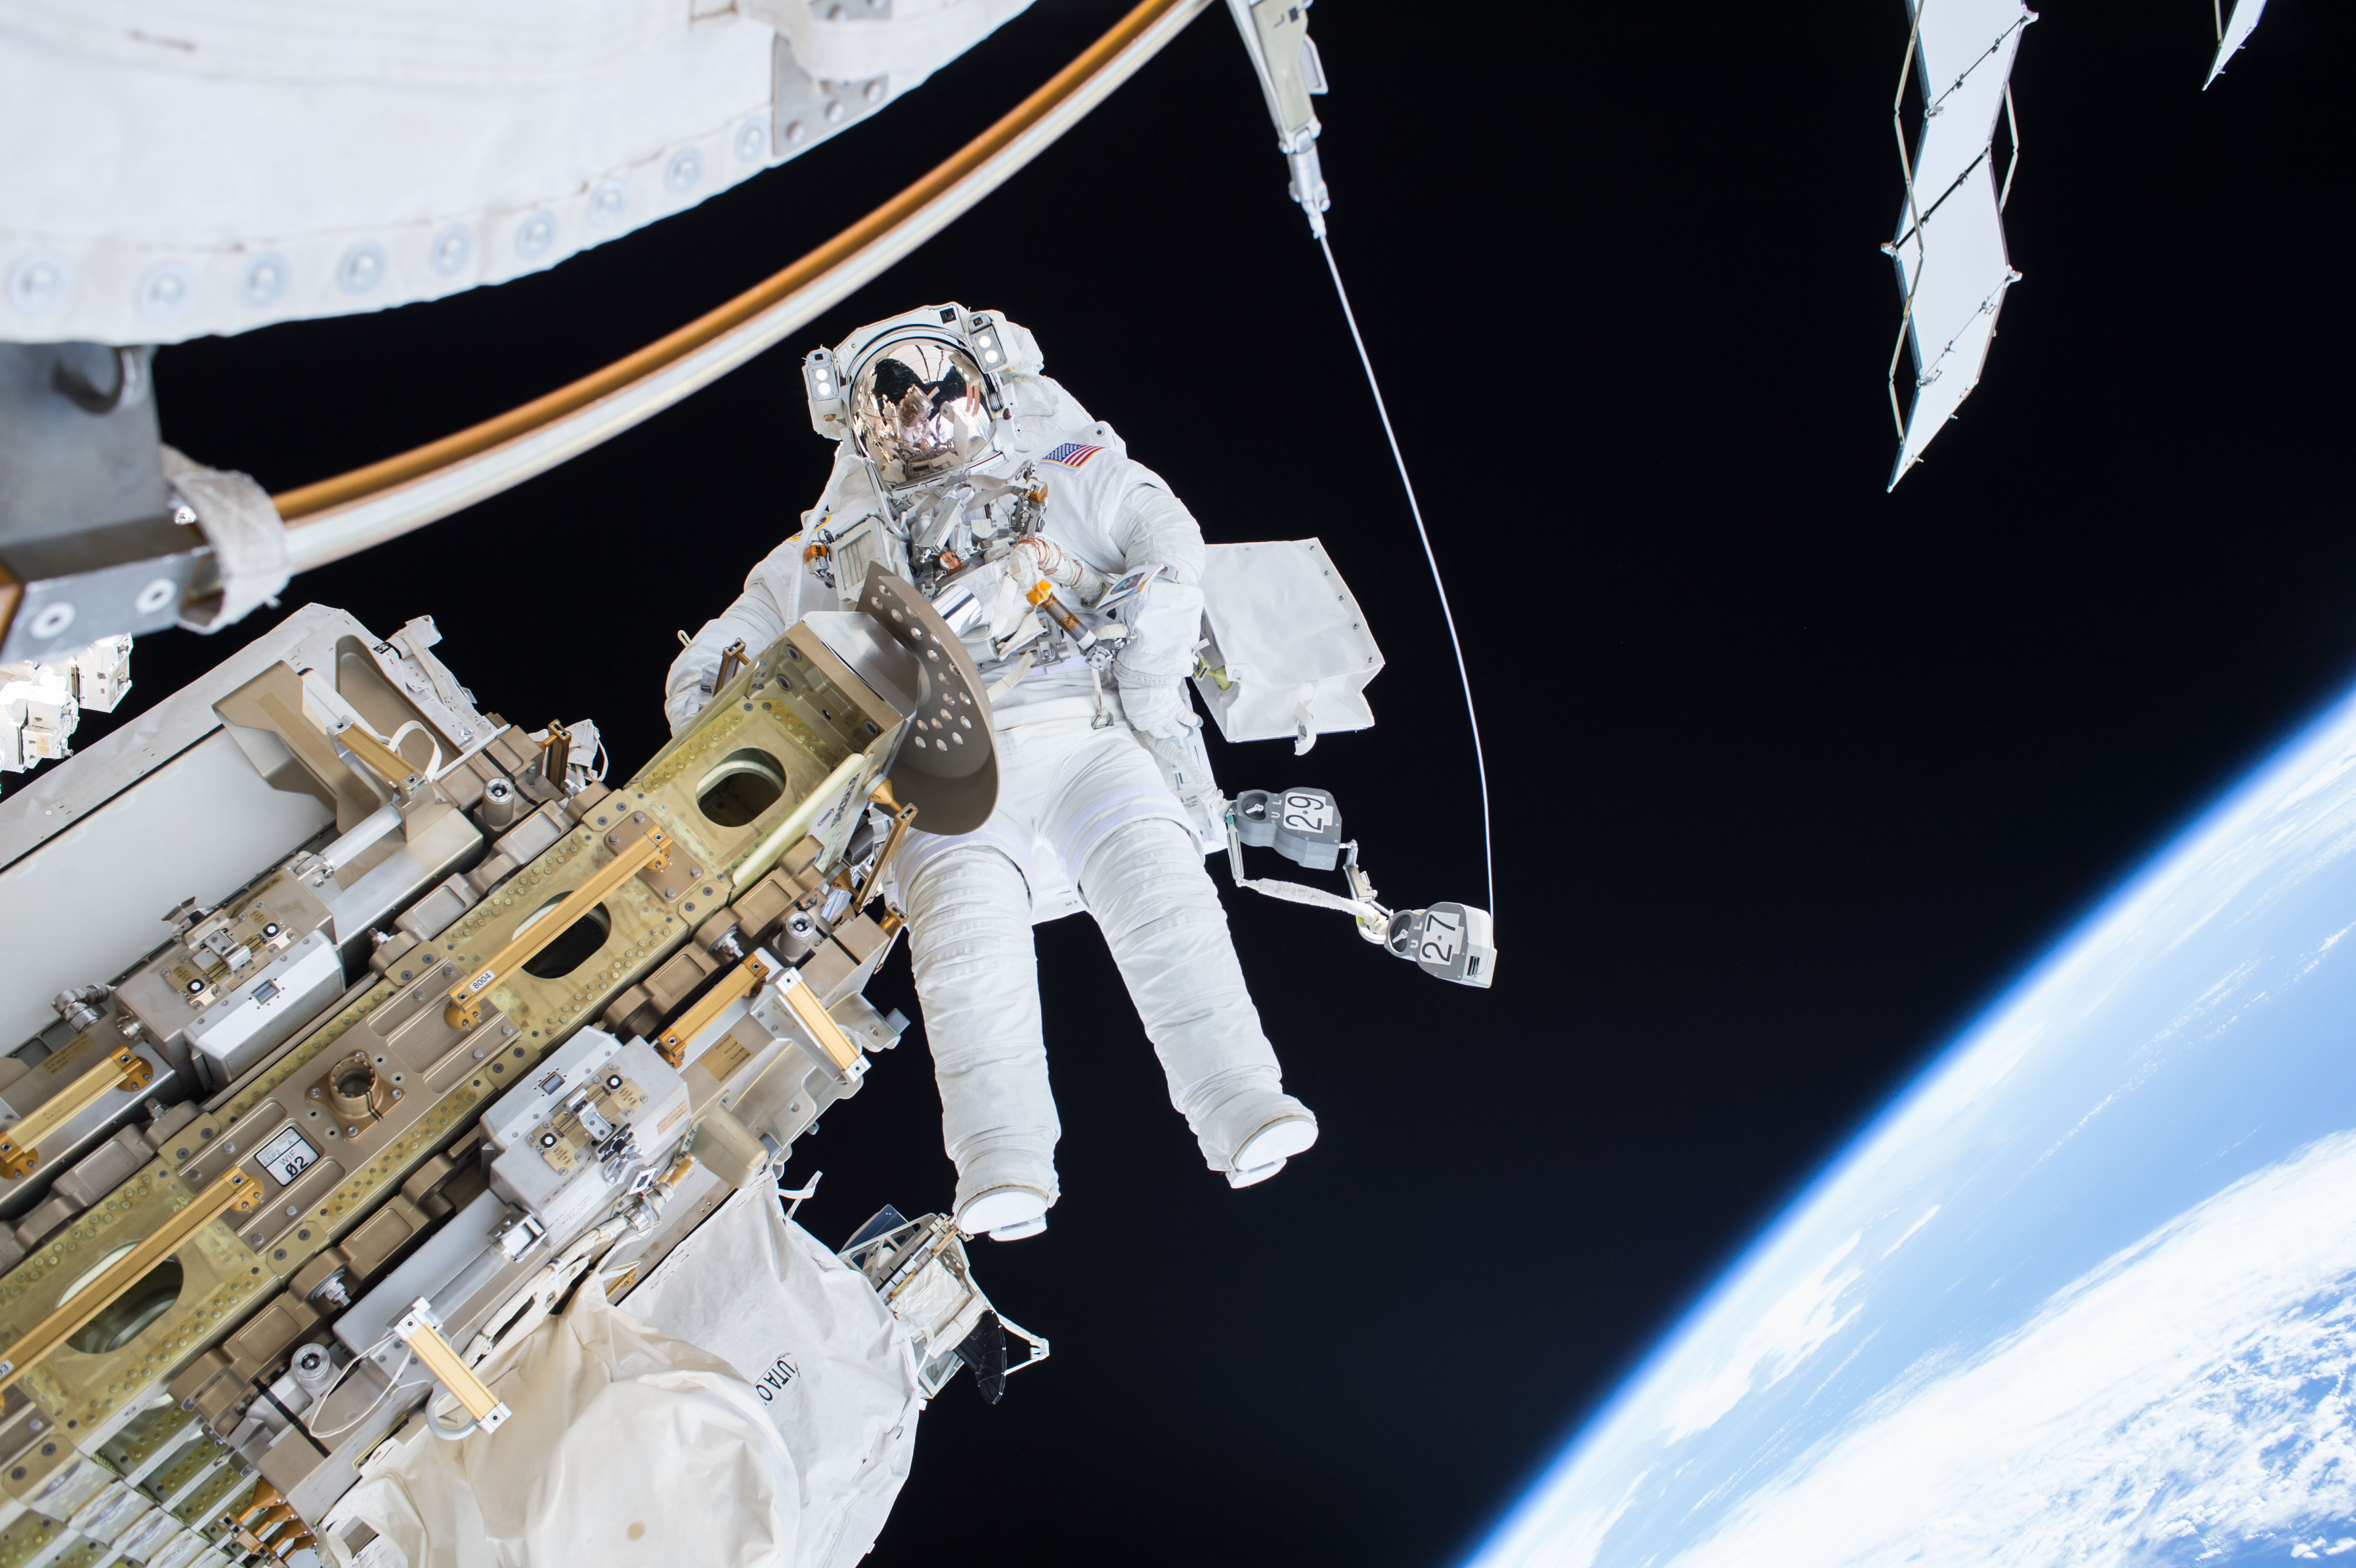 Be An Astronaut NASA Accepting Applications For Future Explorers - Astronaut decorations